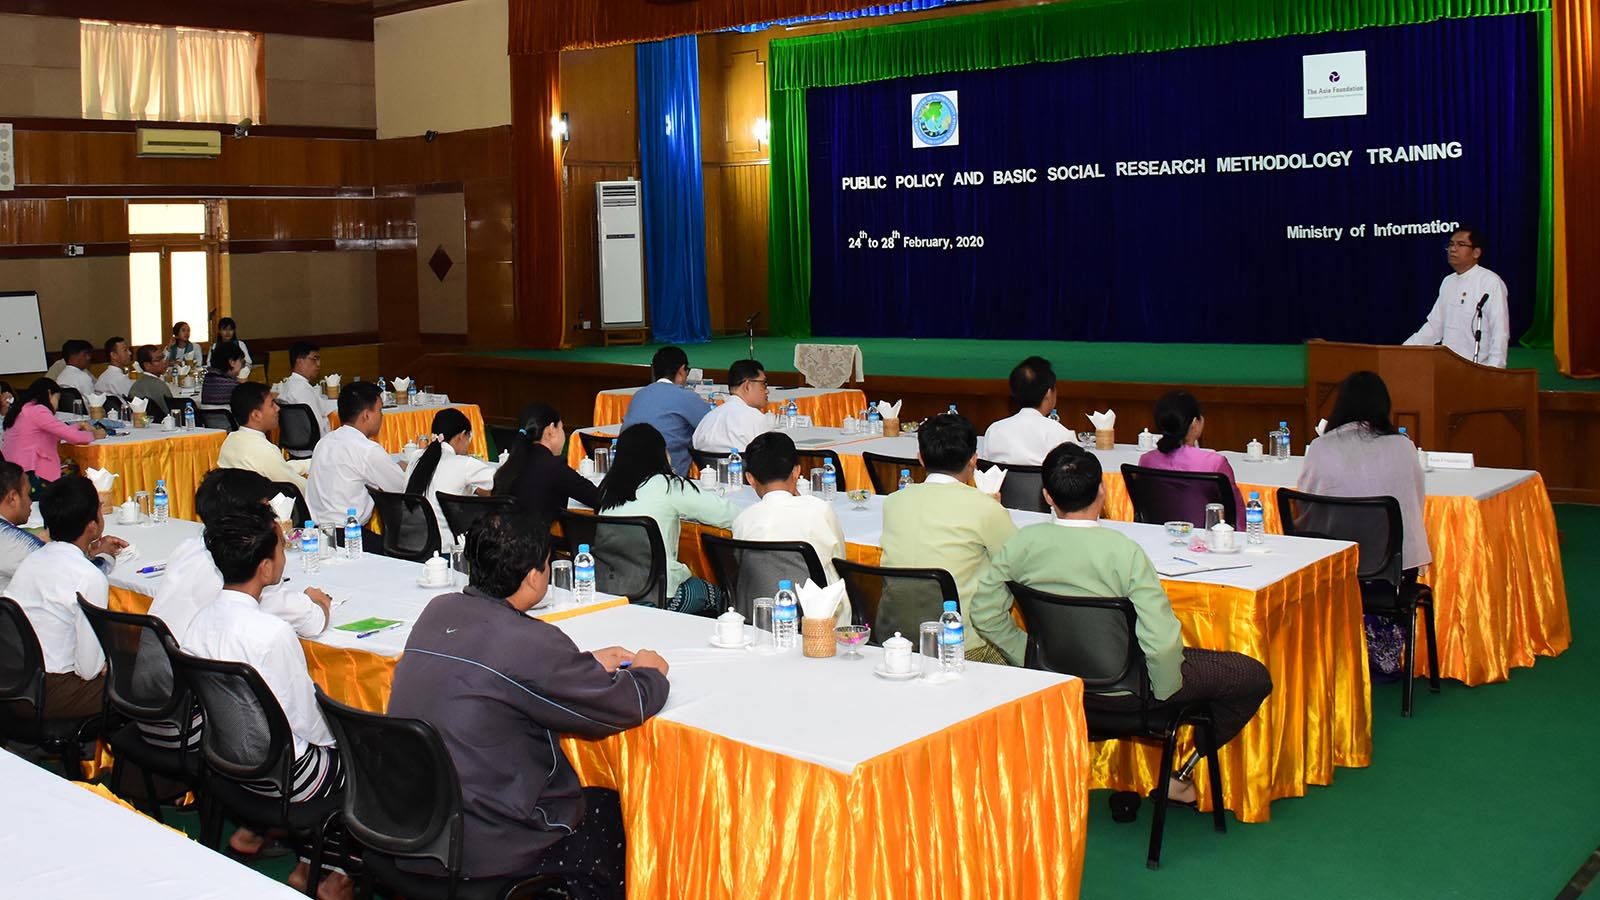 Deputy Minister U Aung Hla Tun delivers the speech at the event to conduct the Public Policy and Basic Social Research Methodology Training in Nay Pyi Taw yesterday.Photo: MNA